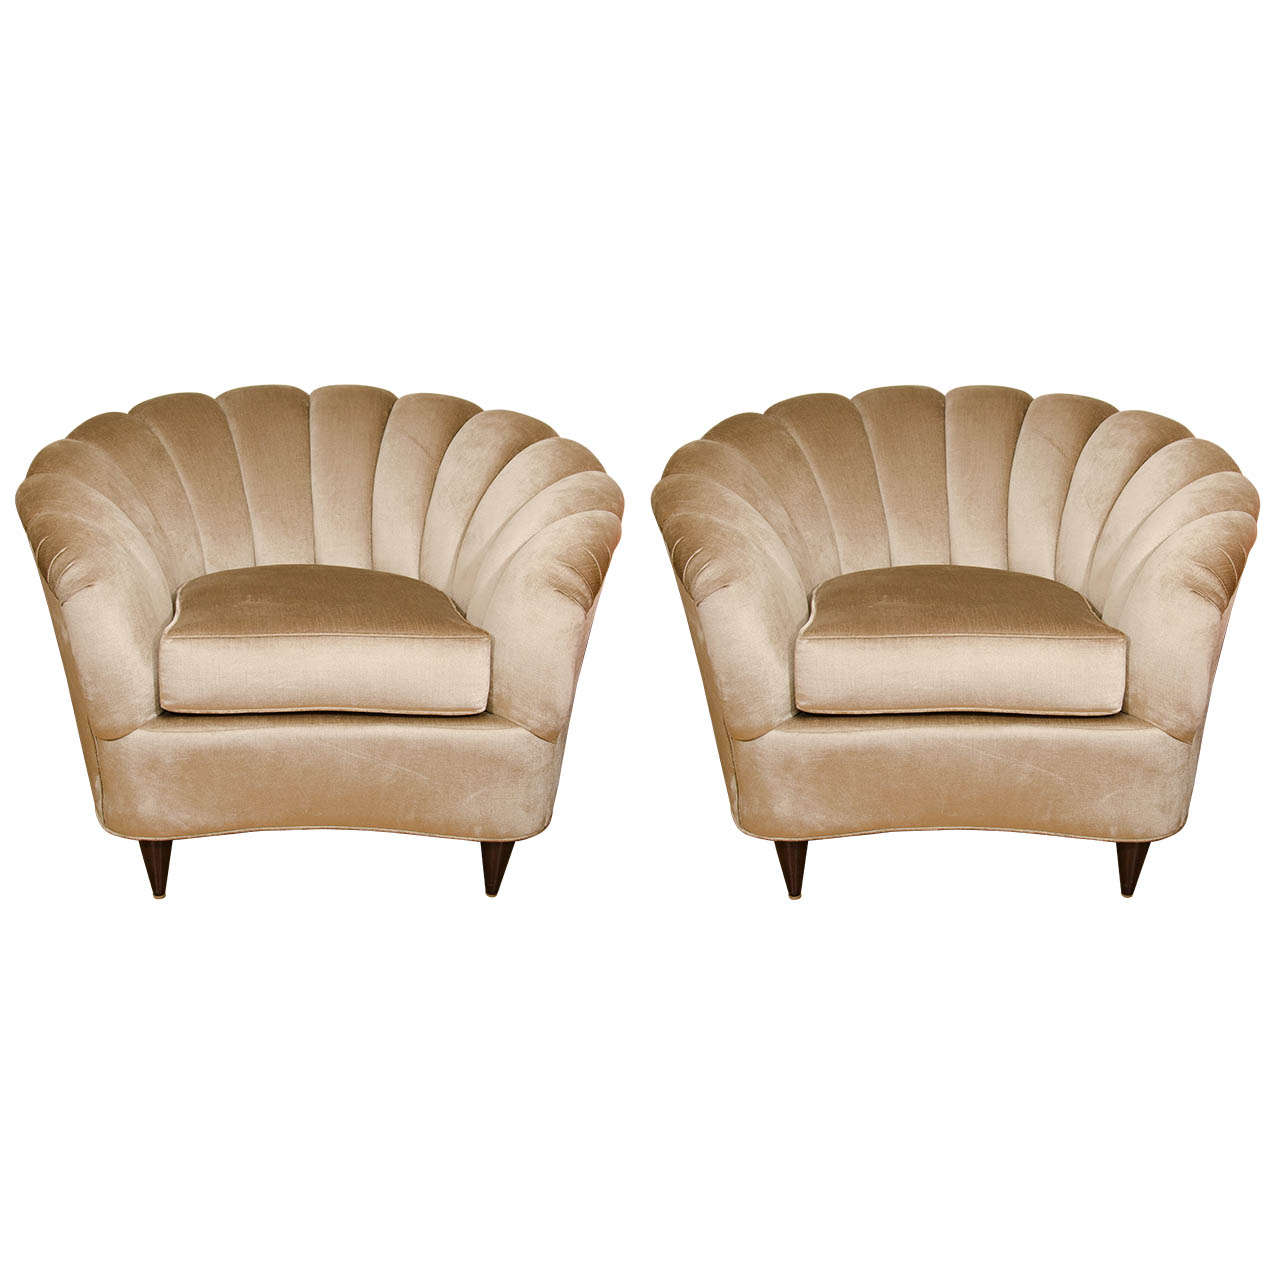 Fan Back Chair Pair Of Fan Back Upholstered Club Chairs At 1stdibs